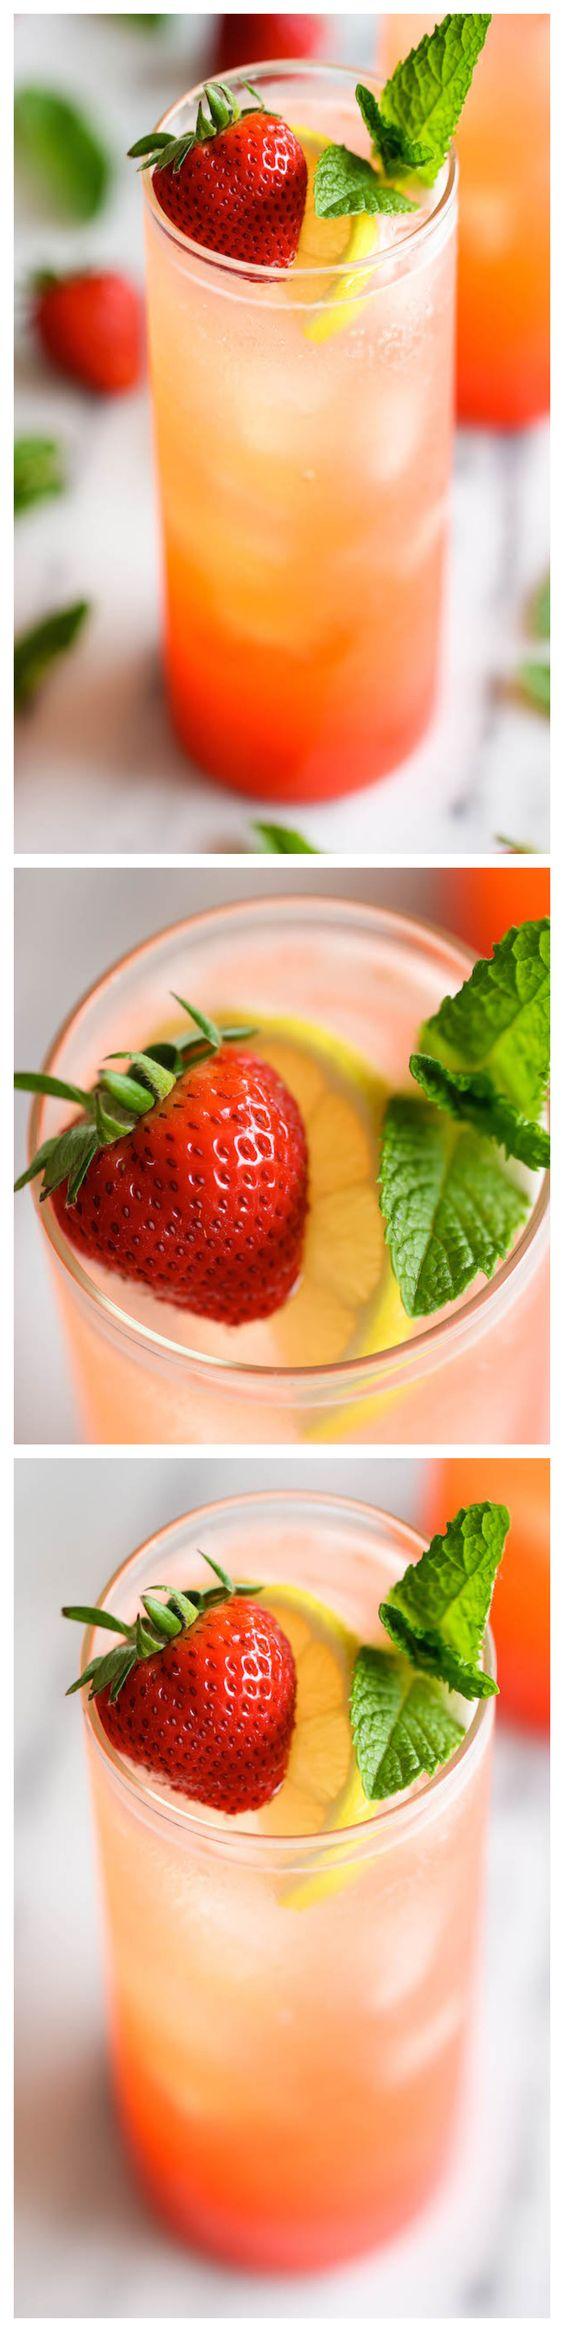 Sparkling Strawberry Lemonade | Recipe | Strawberry lemonade, Graphics ...